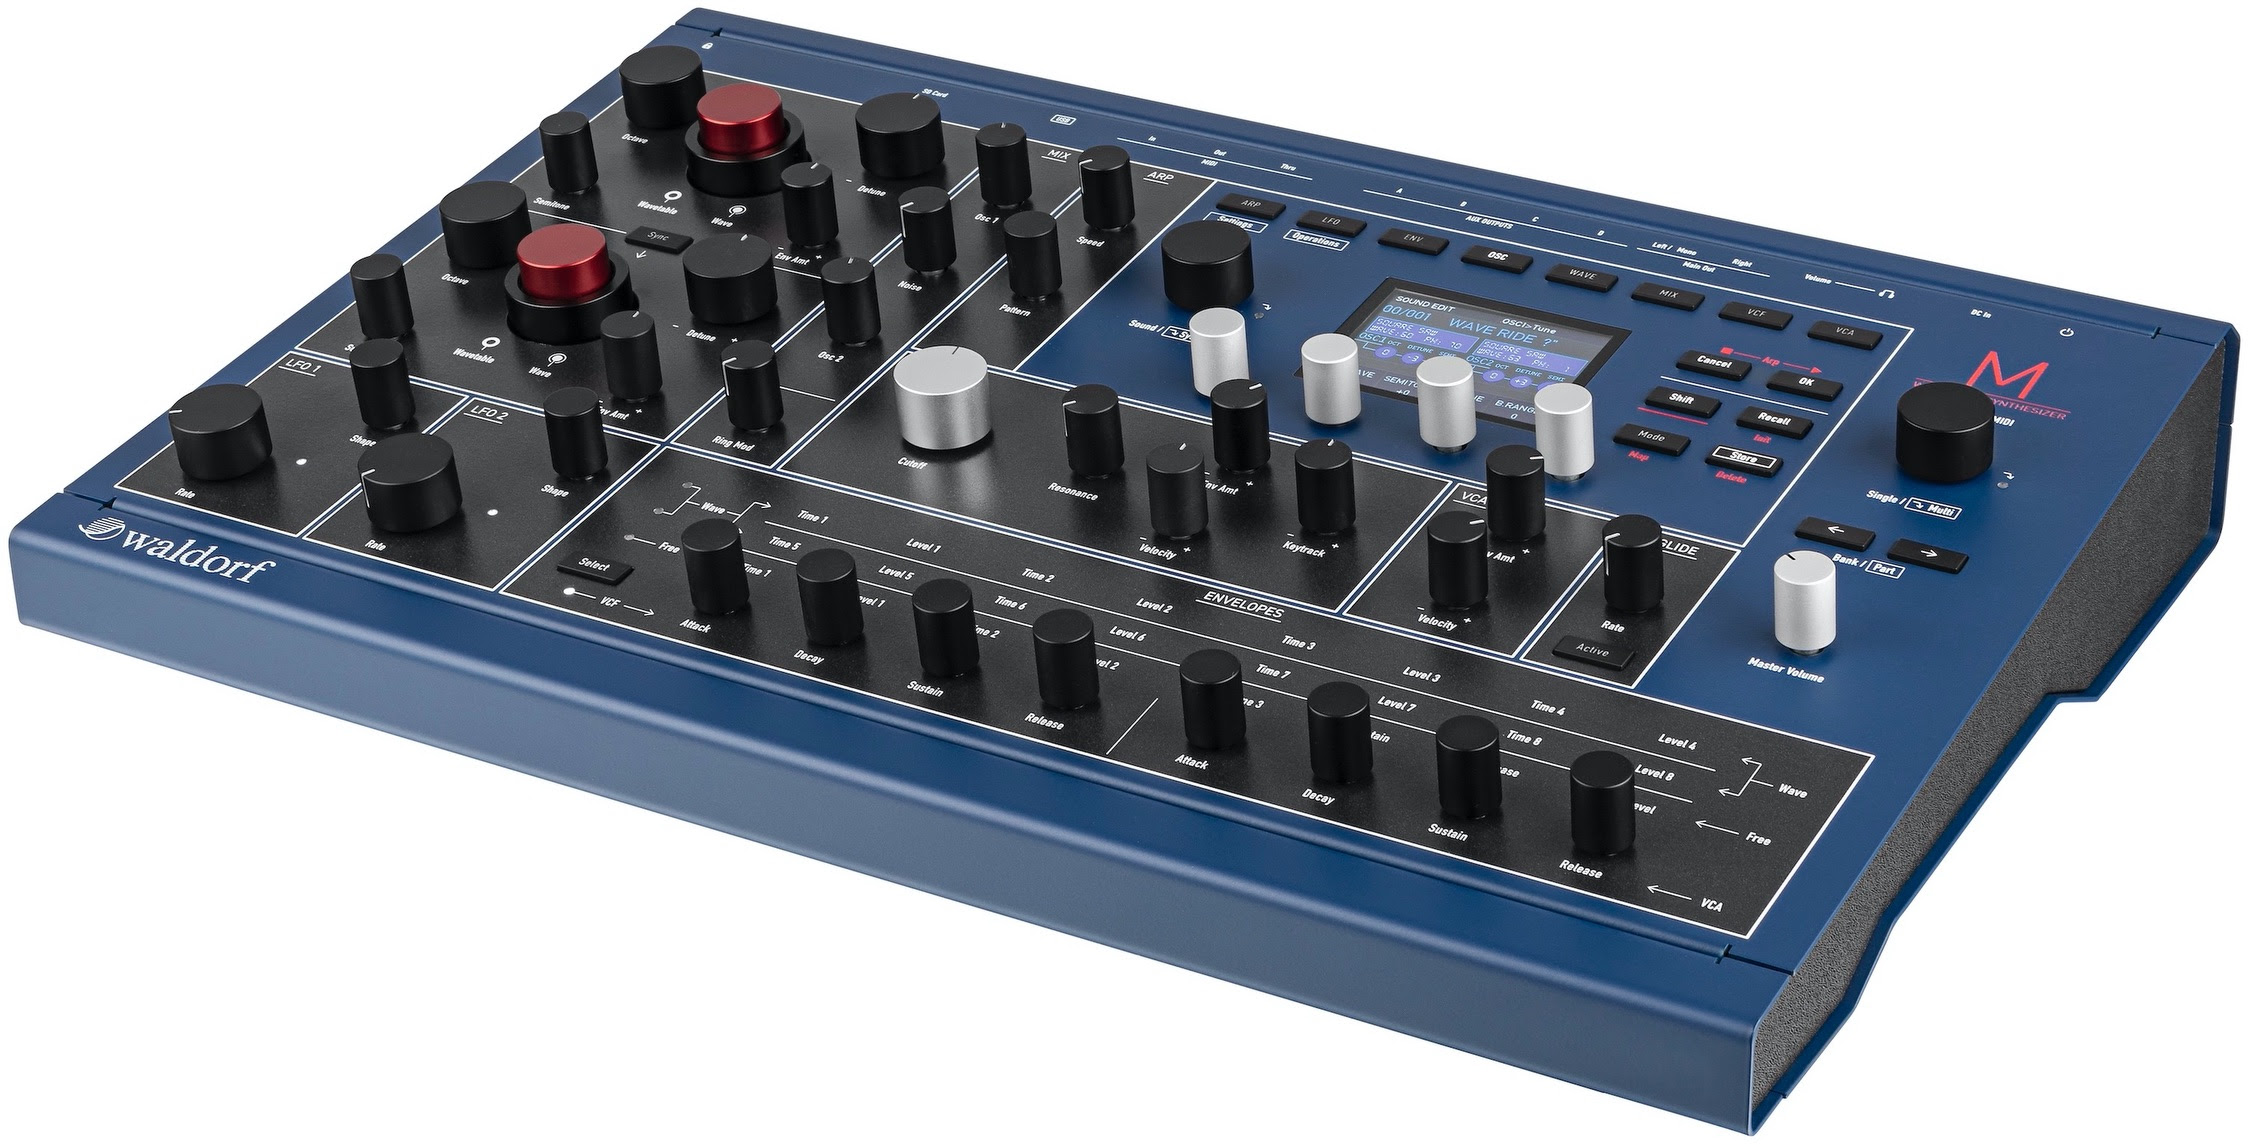 Waldorf brings back classic Microwave and 'modern' Microwave II tone generation to new-generation M wavetable synthesizer